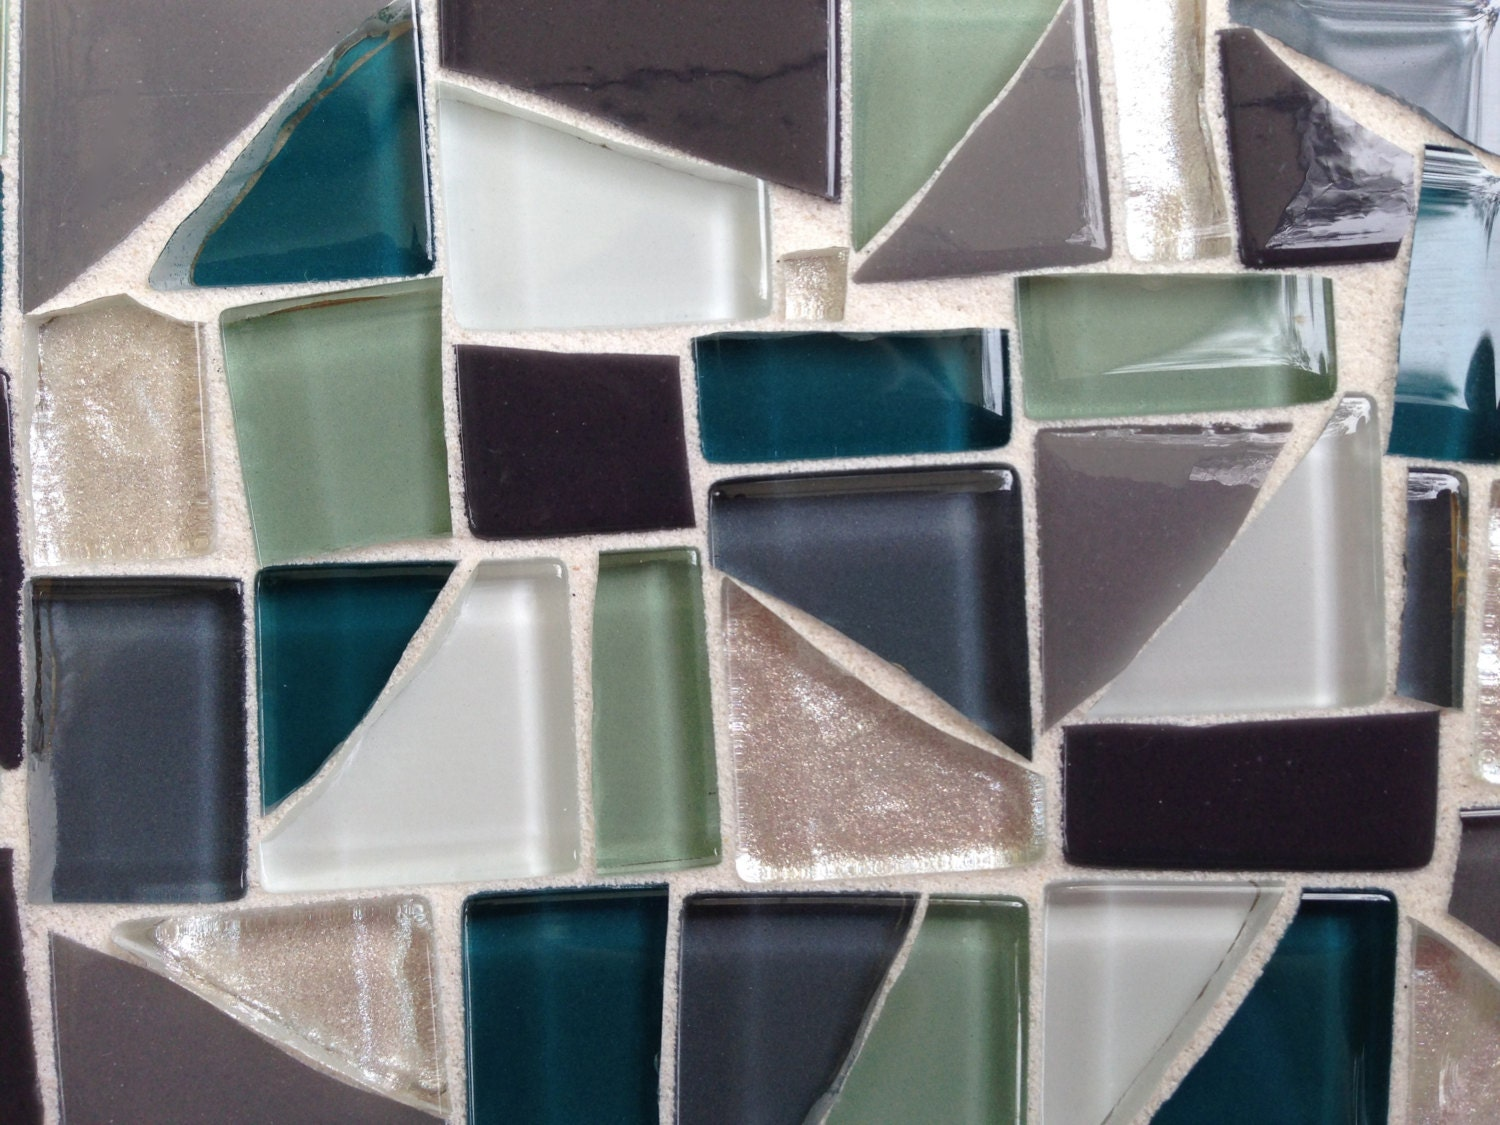 Mosaic mirror frame gray white green teal home decor for Teal framed mirror